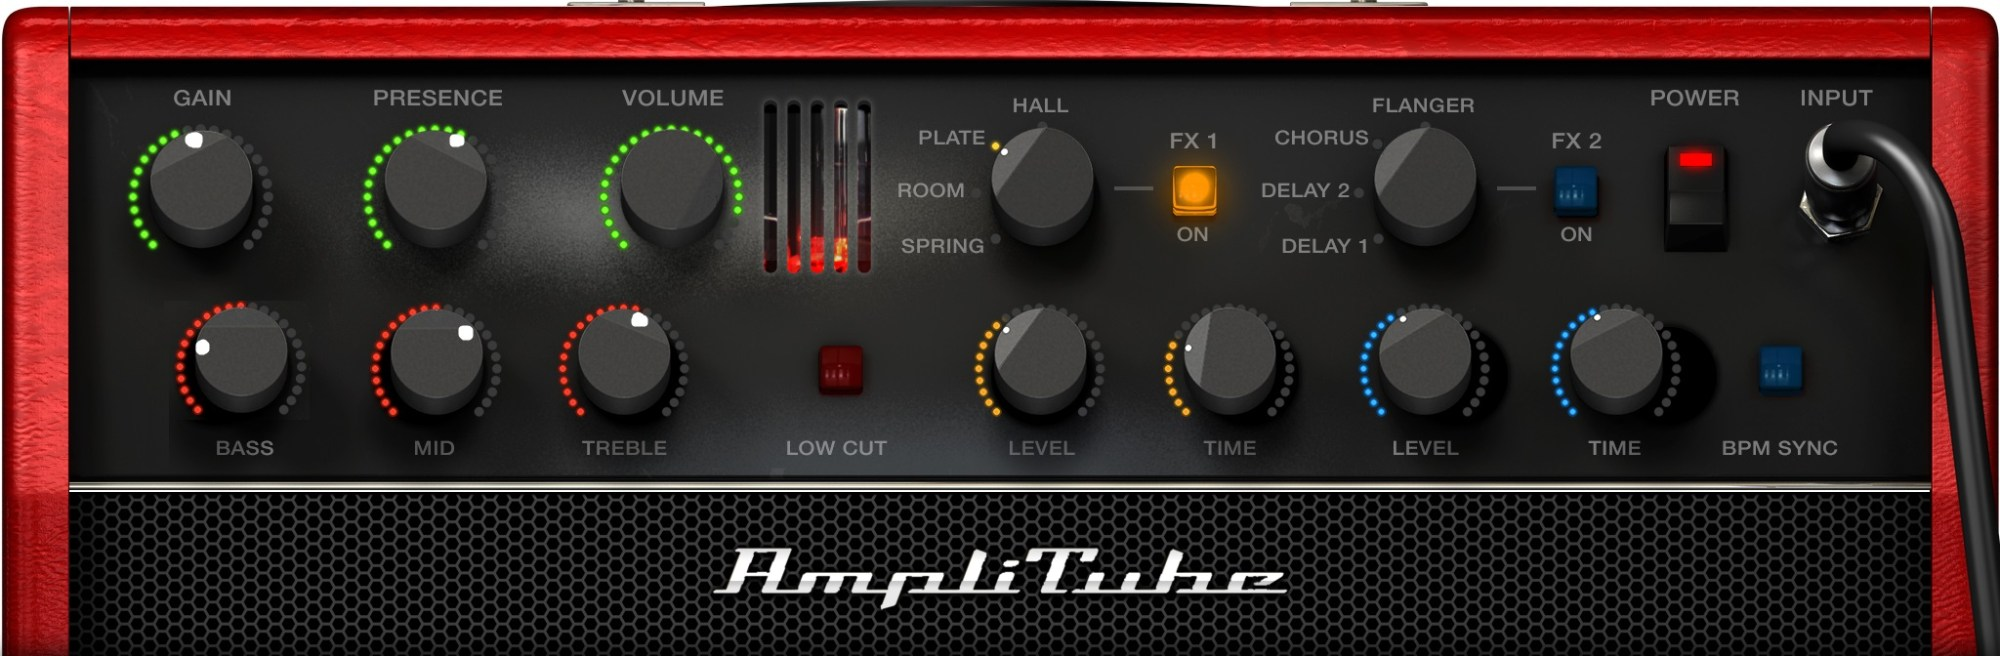 hight resolution of acoustic guitar amp settings 2 0